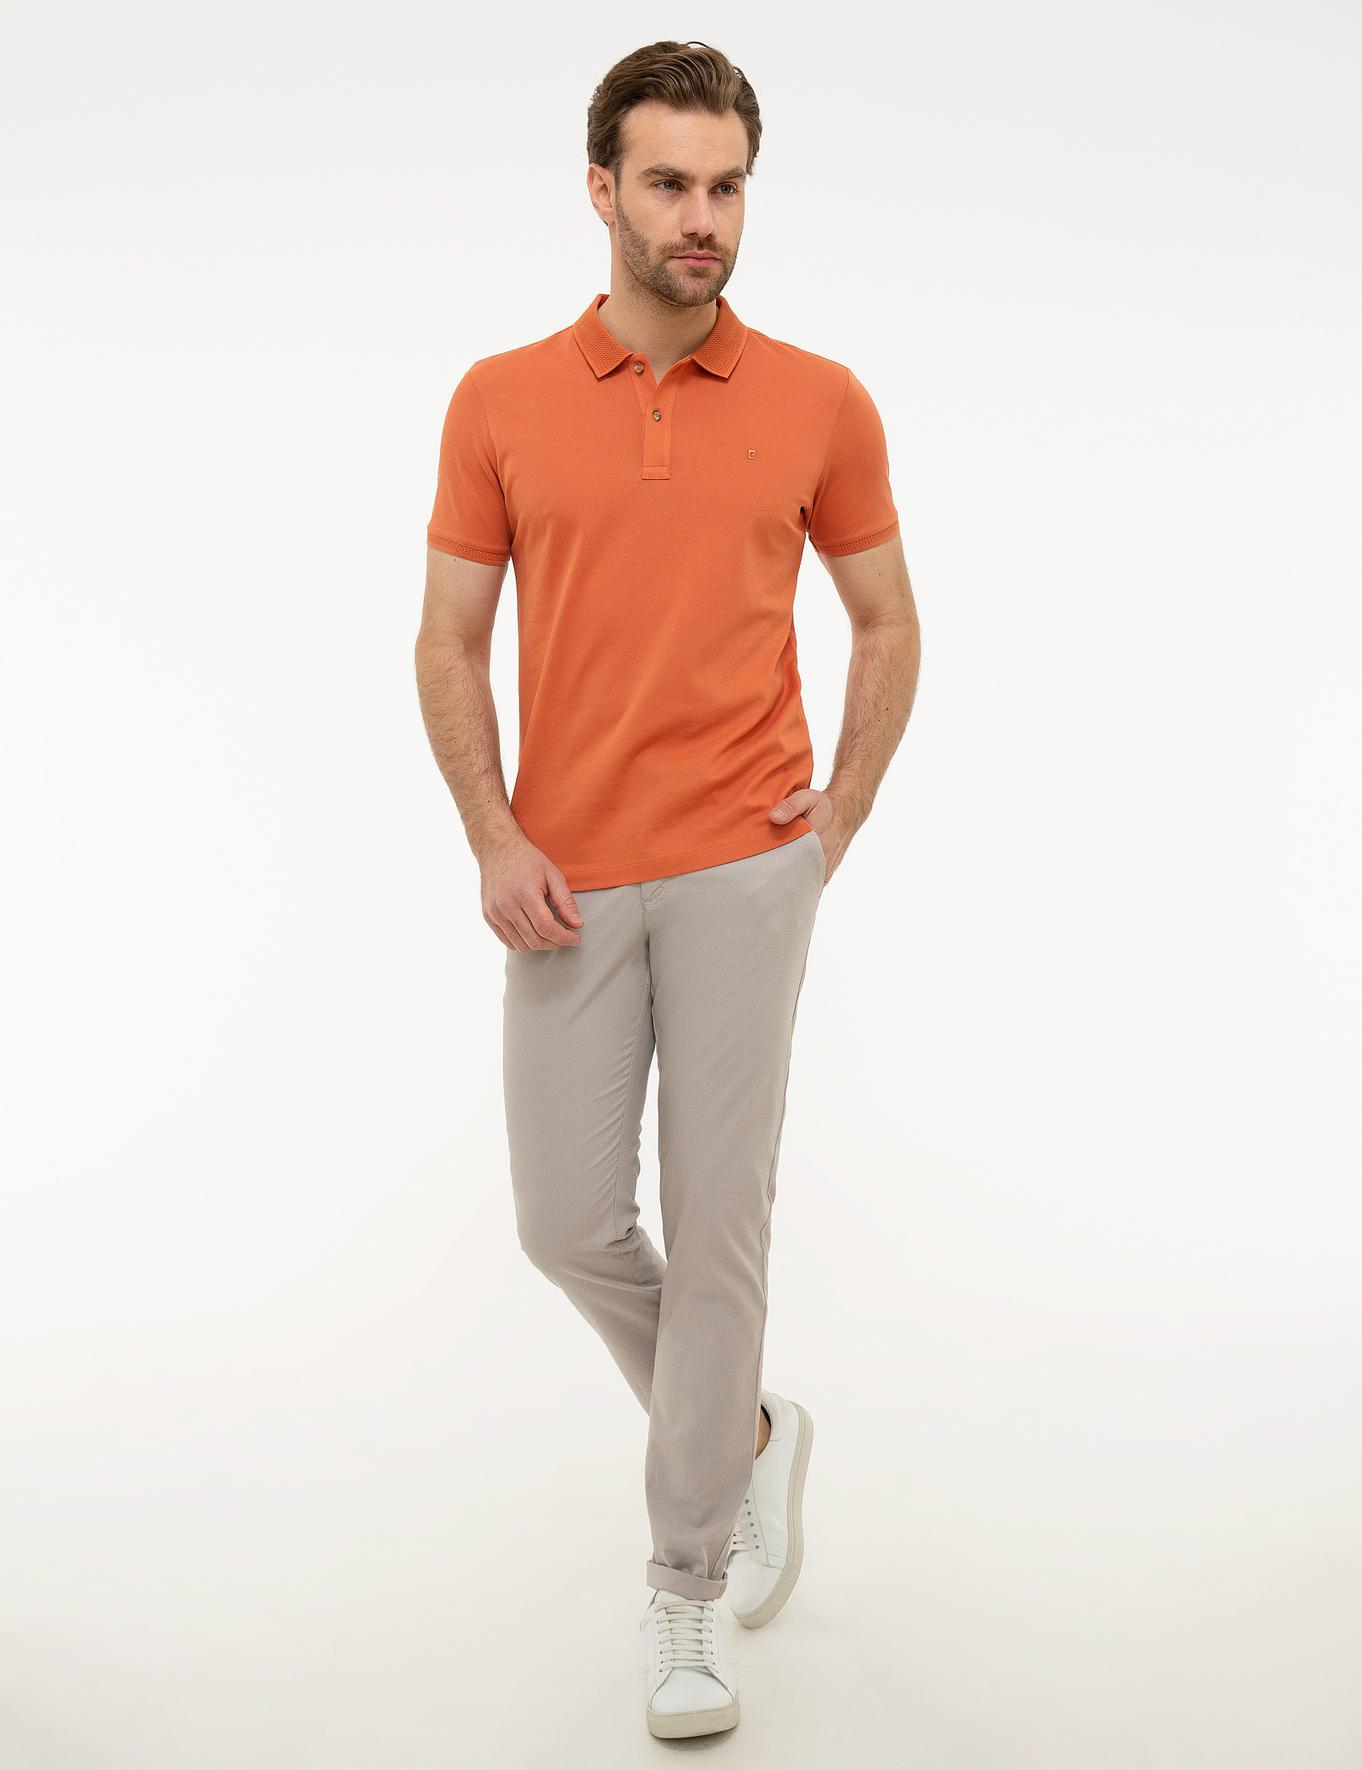 Turuncu Slim Fit Merserize Polo Yaka T-Shirt